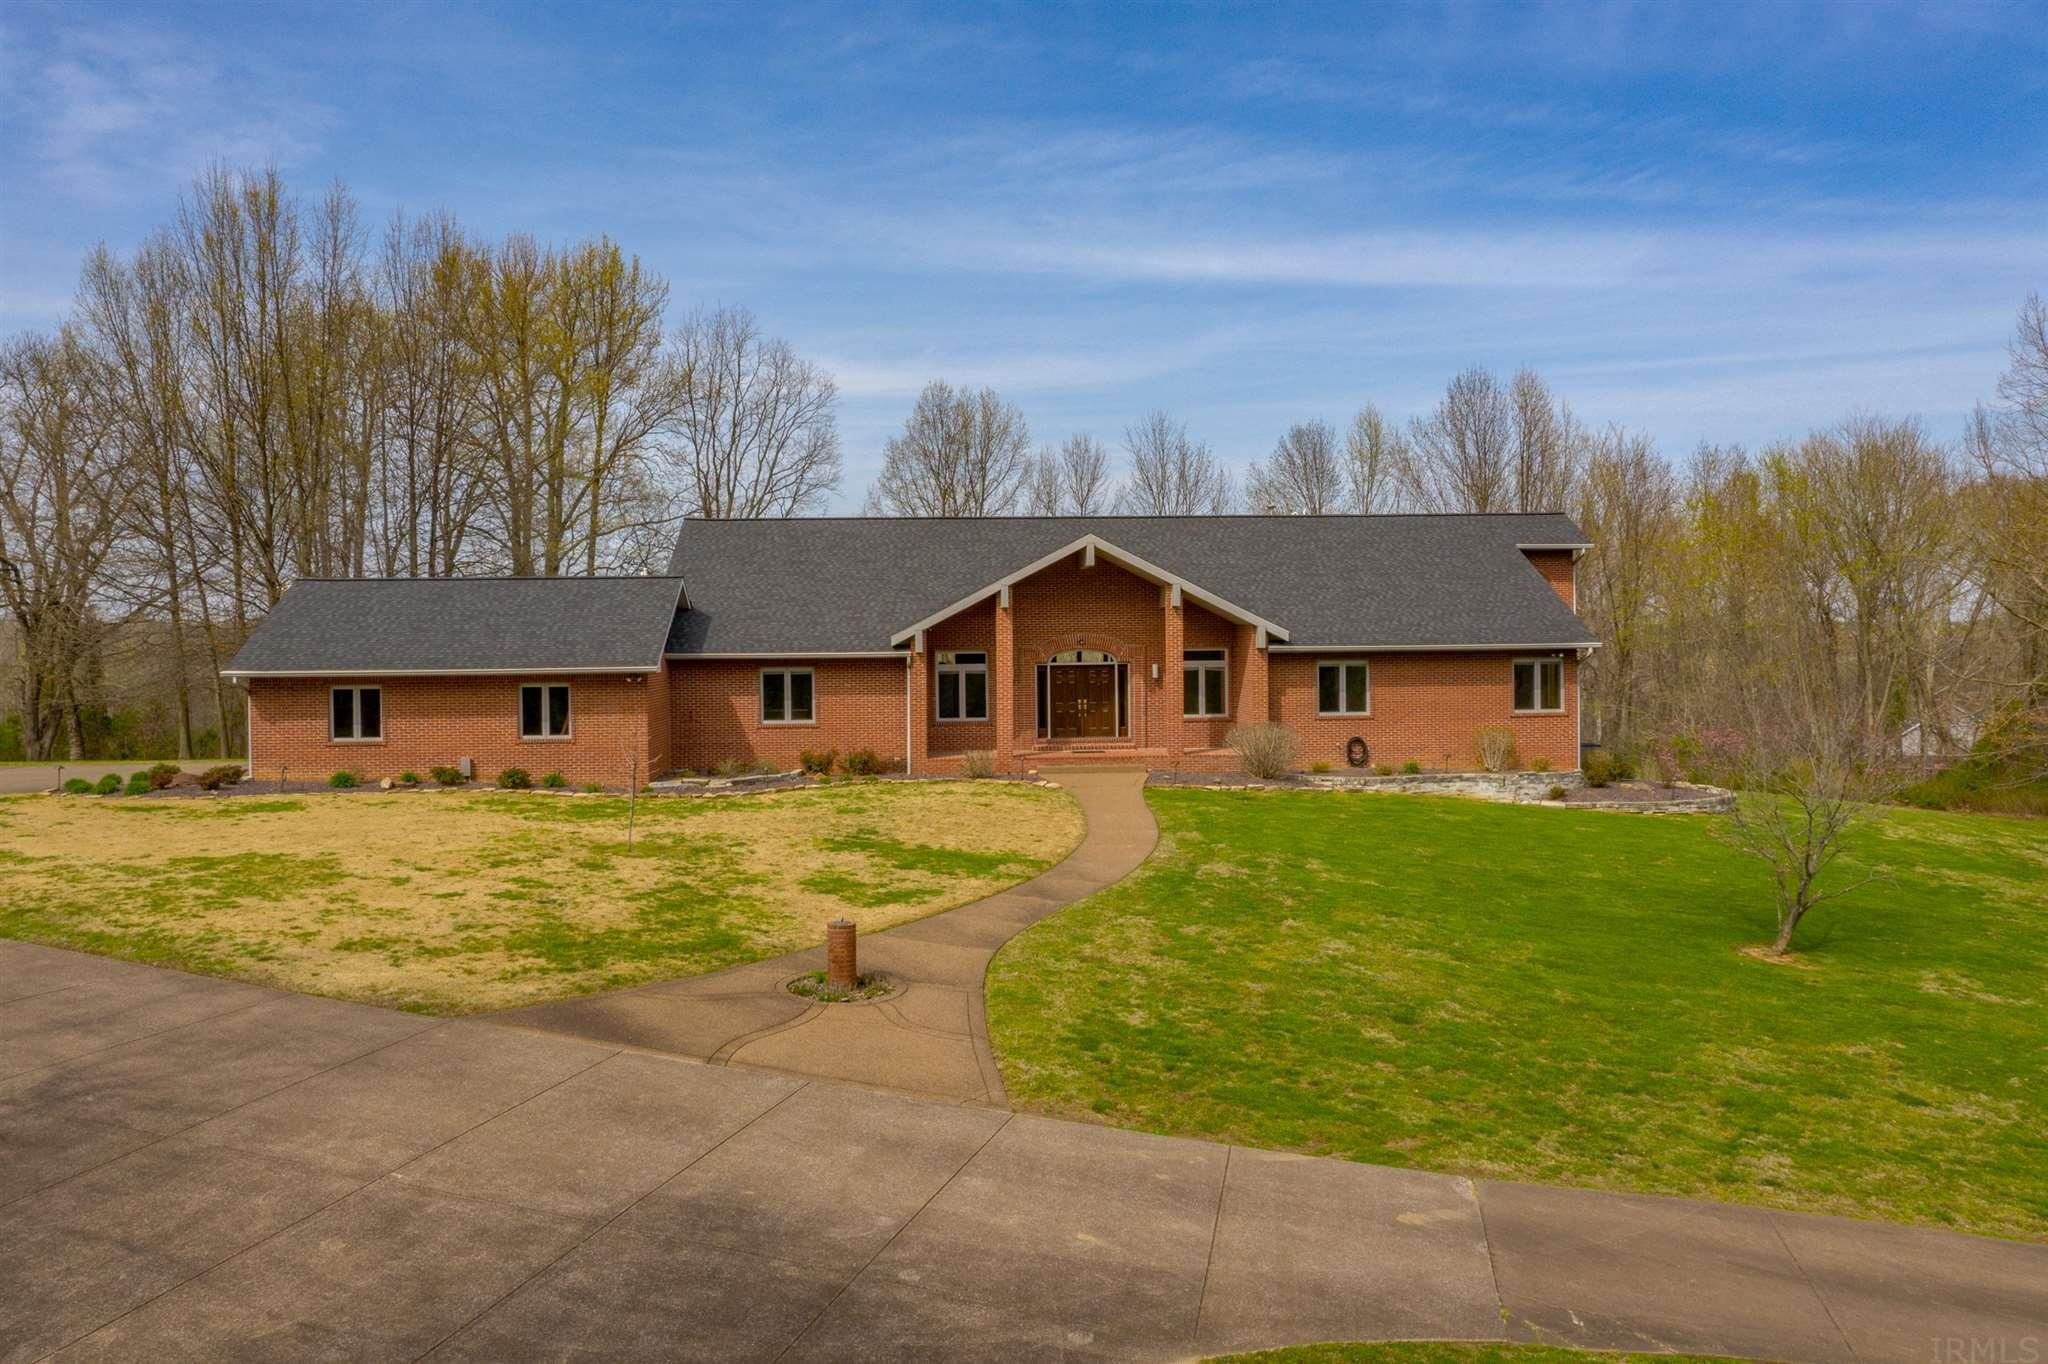 County Living at its best on over 19 acres. The inside of this beautiful home was  thoughtfully designed with entertaining in min.  Boasting an open spacious floorplan with vaulted ceilings throughout. This one owner custom built home is a must see.  The main floor features a formal dining room, great room with fireplace, an Owner's suite with whirlpool tub, spa, and separate shower. All have an amazing views of the property.  Additionally there are two bedrooms located on the first floor. The finished walkout lower level offers a large family room with a fireplace, kitchenette, game area, fourth bedroom and a full bath.  Outdoors you will enjoy the evenings watching wildlife from your very own screened porch or spacious deck. Lots of yard space and room to play or have animals. Detached over 4320 sq ft detached buildings (70x48 and 48x20) are combined to make one climate controlled garage. The garage has a workshop, lift, RV hook-ups and a 14' clearance perfect for any RV.  The garage could easily be converted to horse stalls if desired. This home is Located within minutes of shopping, schools and hospitals.